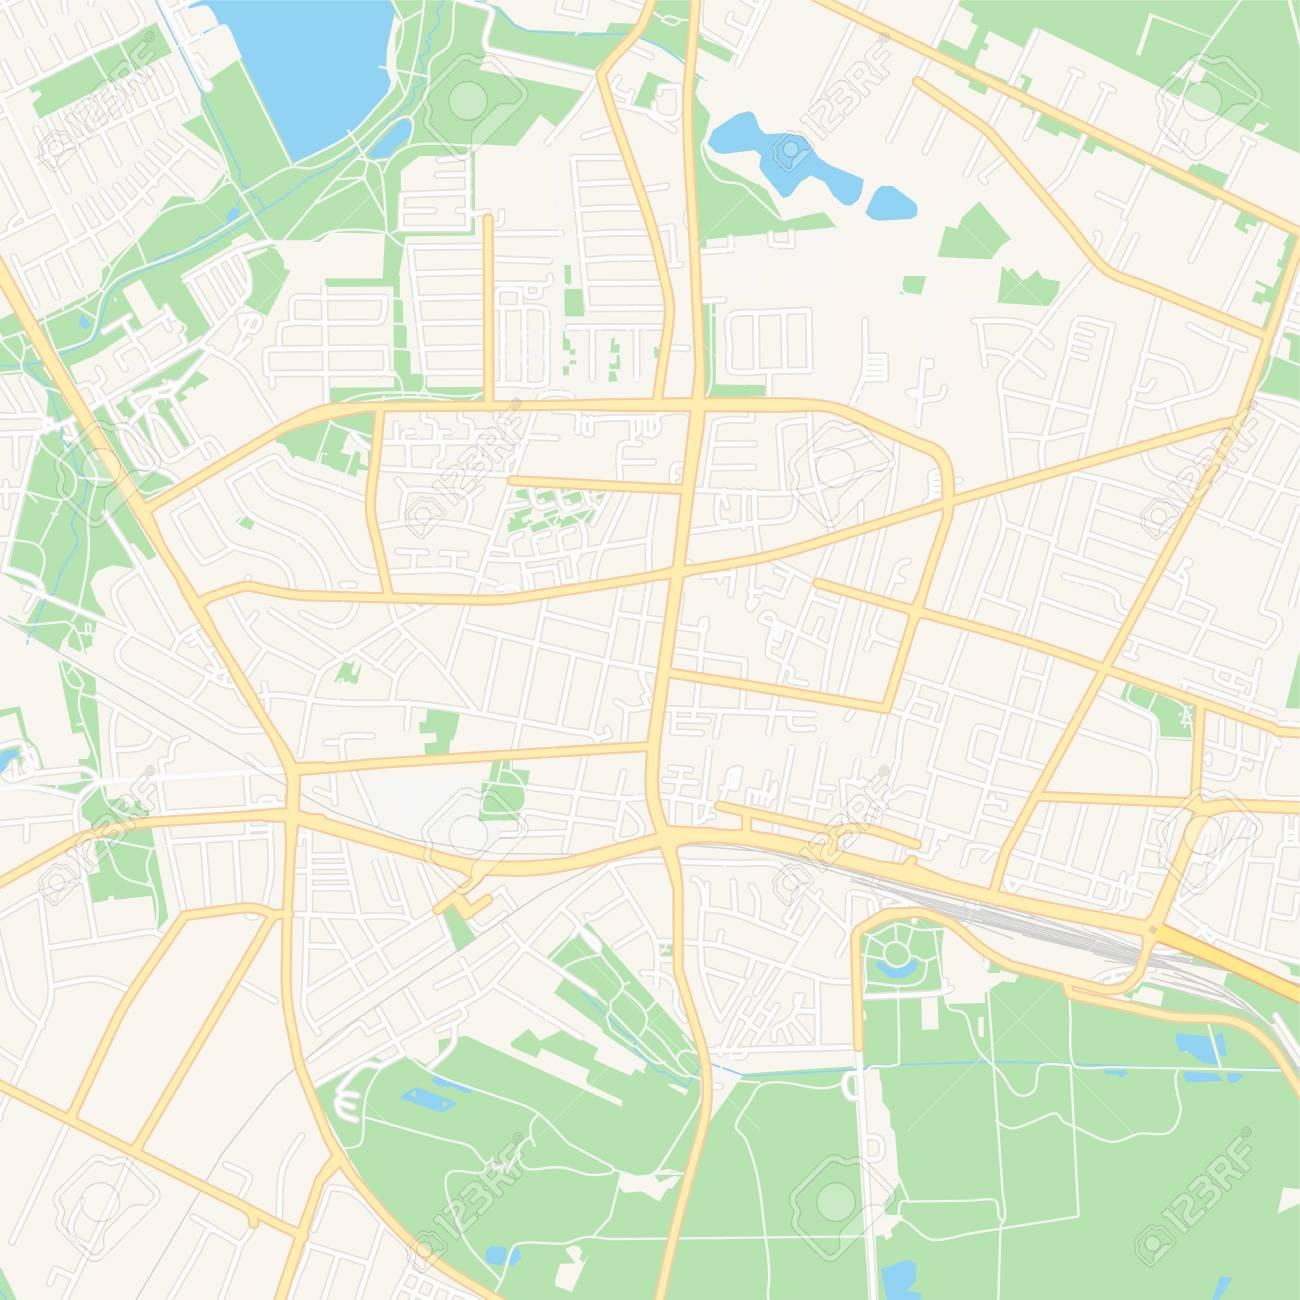 Image of: Printable Map Of Herning Denmark With Main And Secondary Roads Royalty Free Cliparts Vectors And Stock Illustration Image 124119415